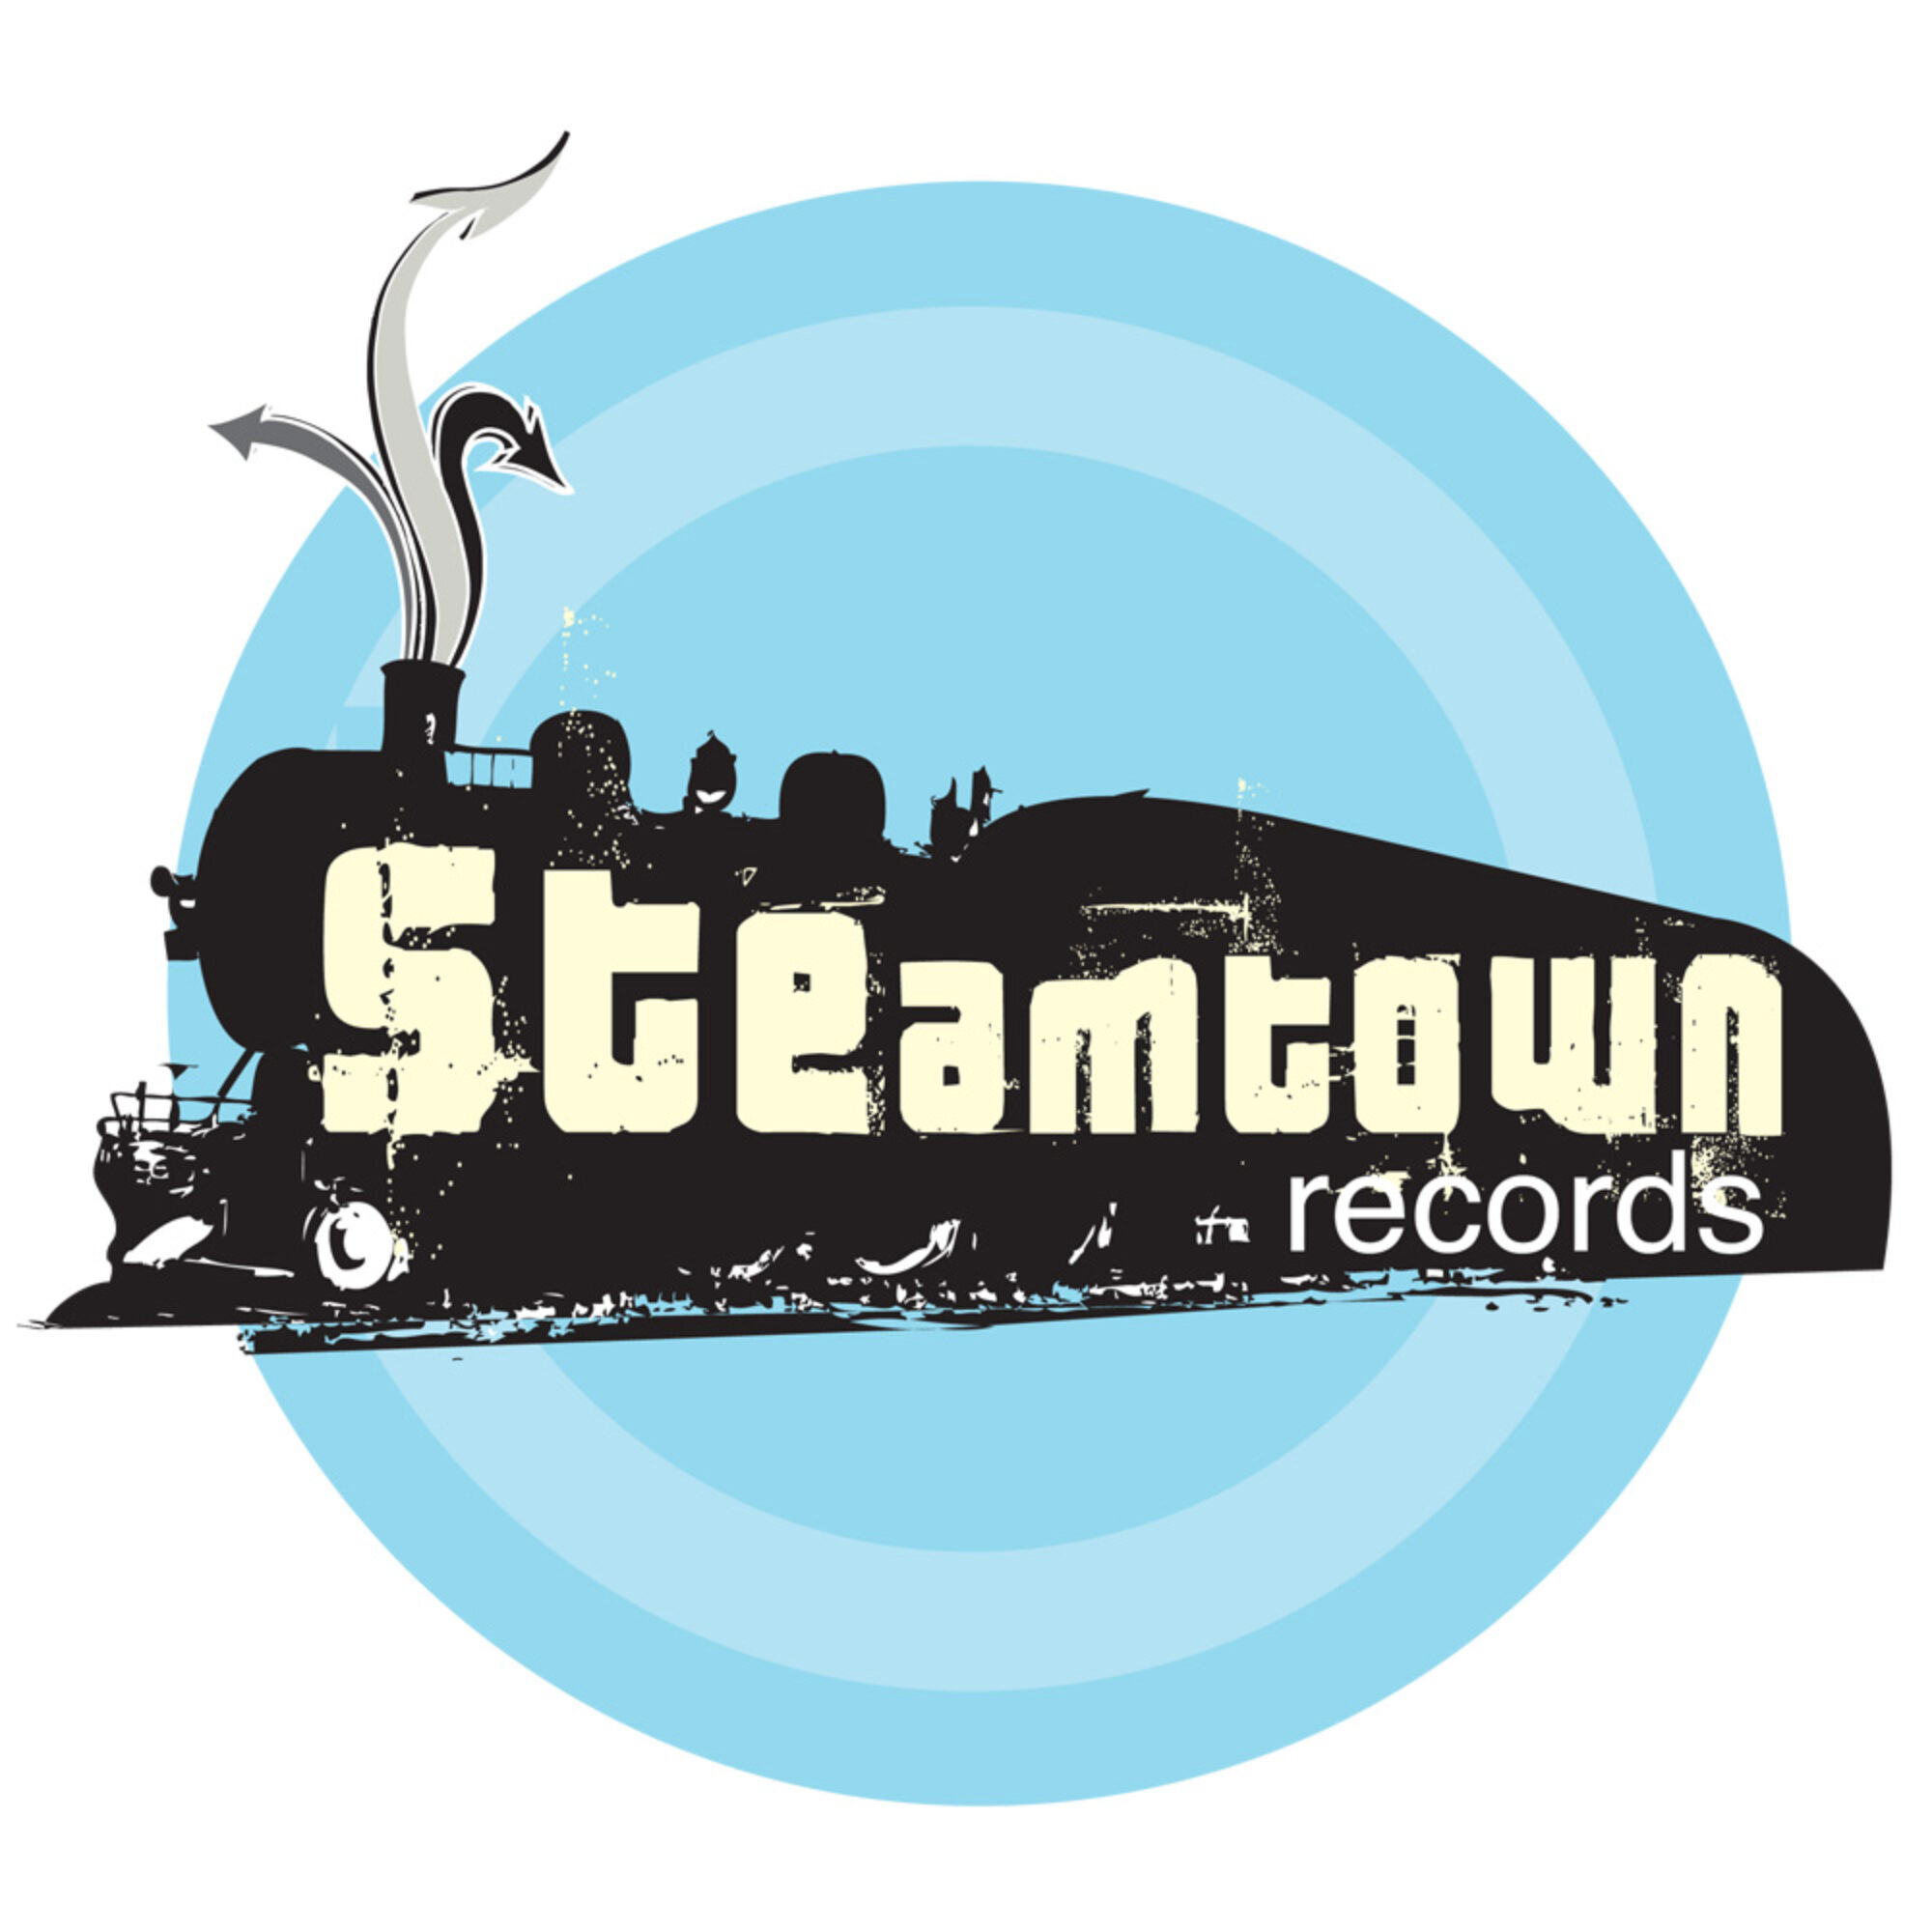 Steamtown Records